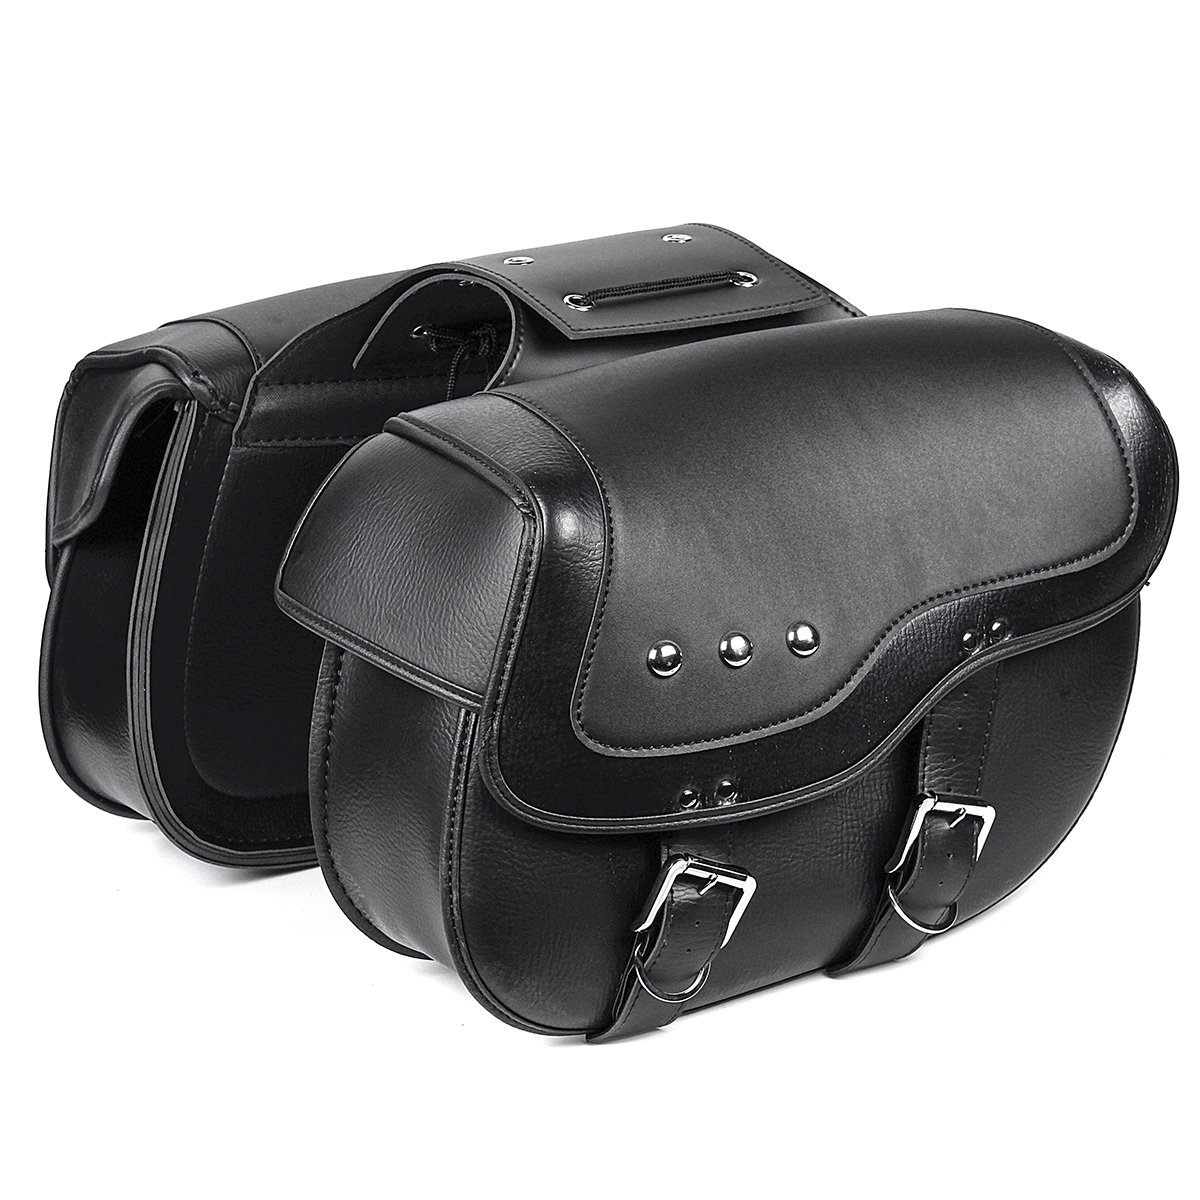 Motorcycle PU Leather Luggage Saddlebags Black For Harley Sportster XL883 1200